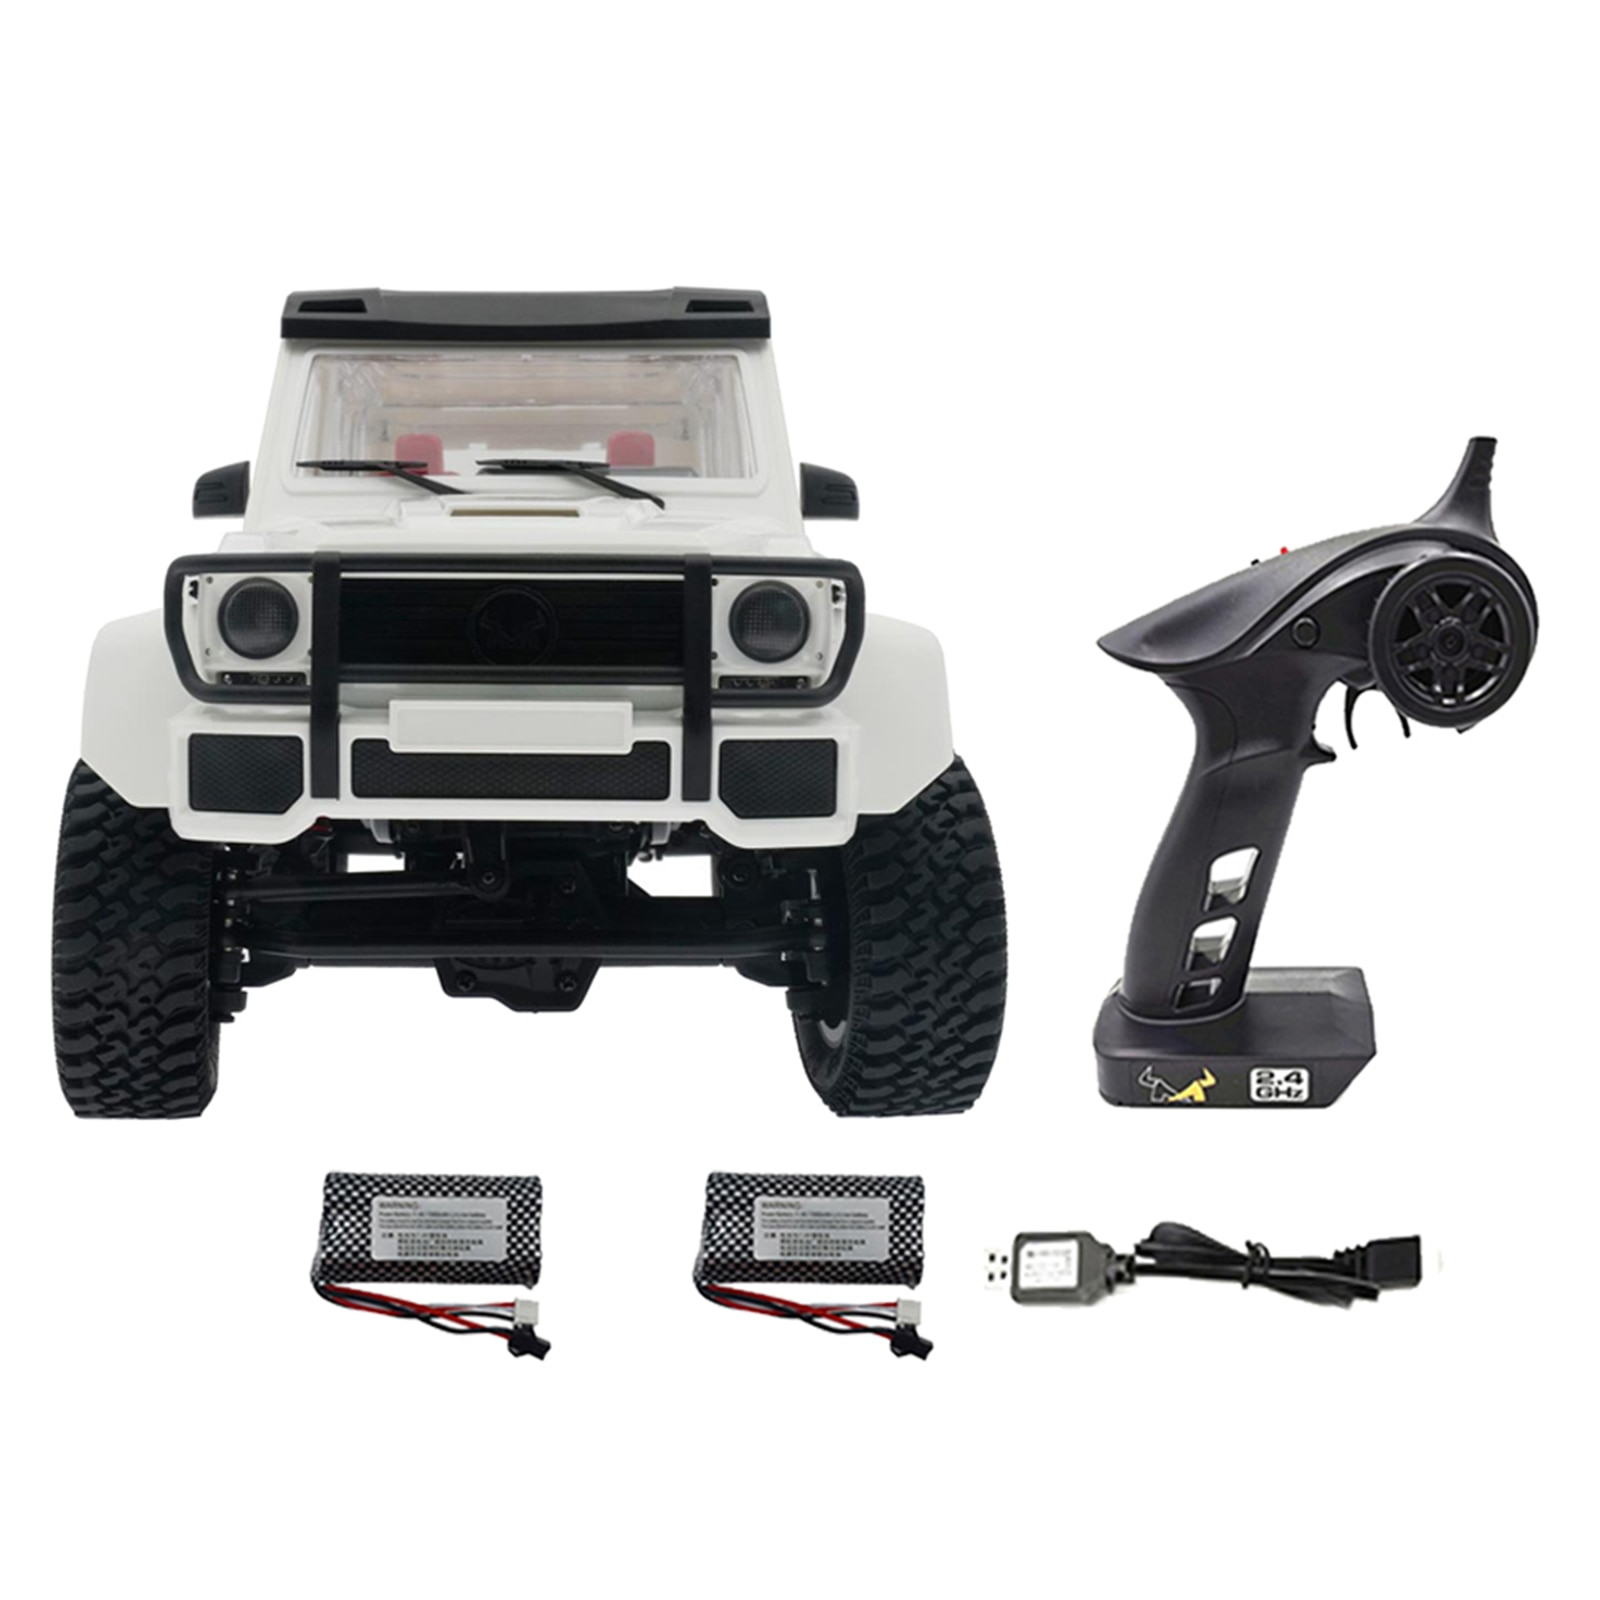 1/12 Scale 2.4G 4WD MN86 RC Car Climbing Car Crawler Off Road Truck for Kids enlarge